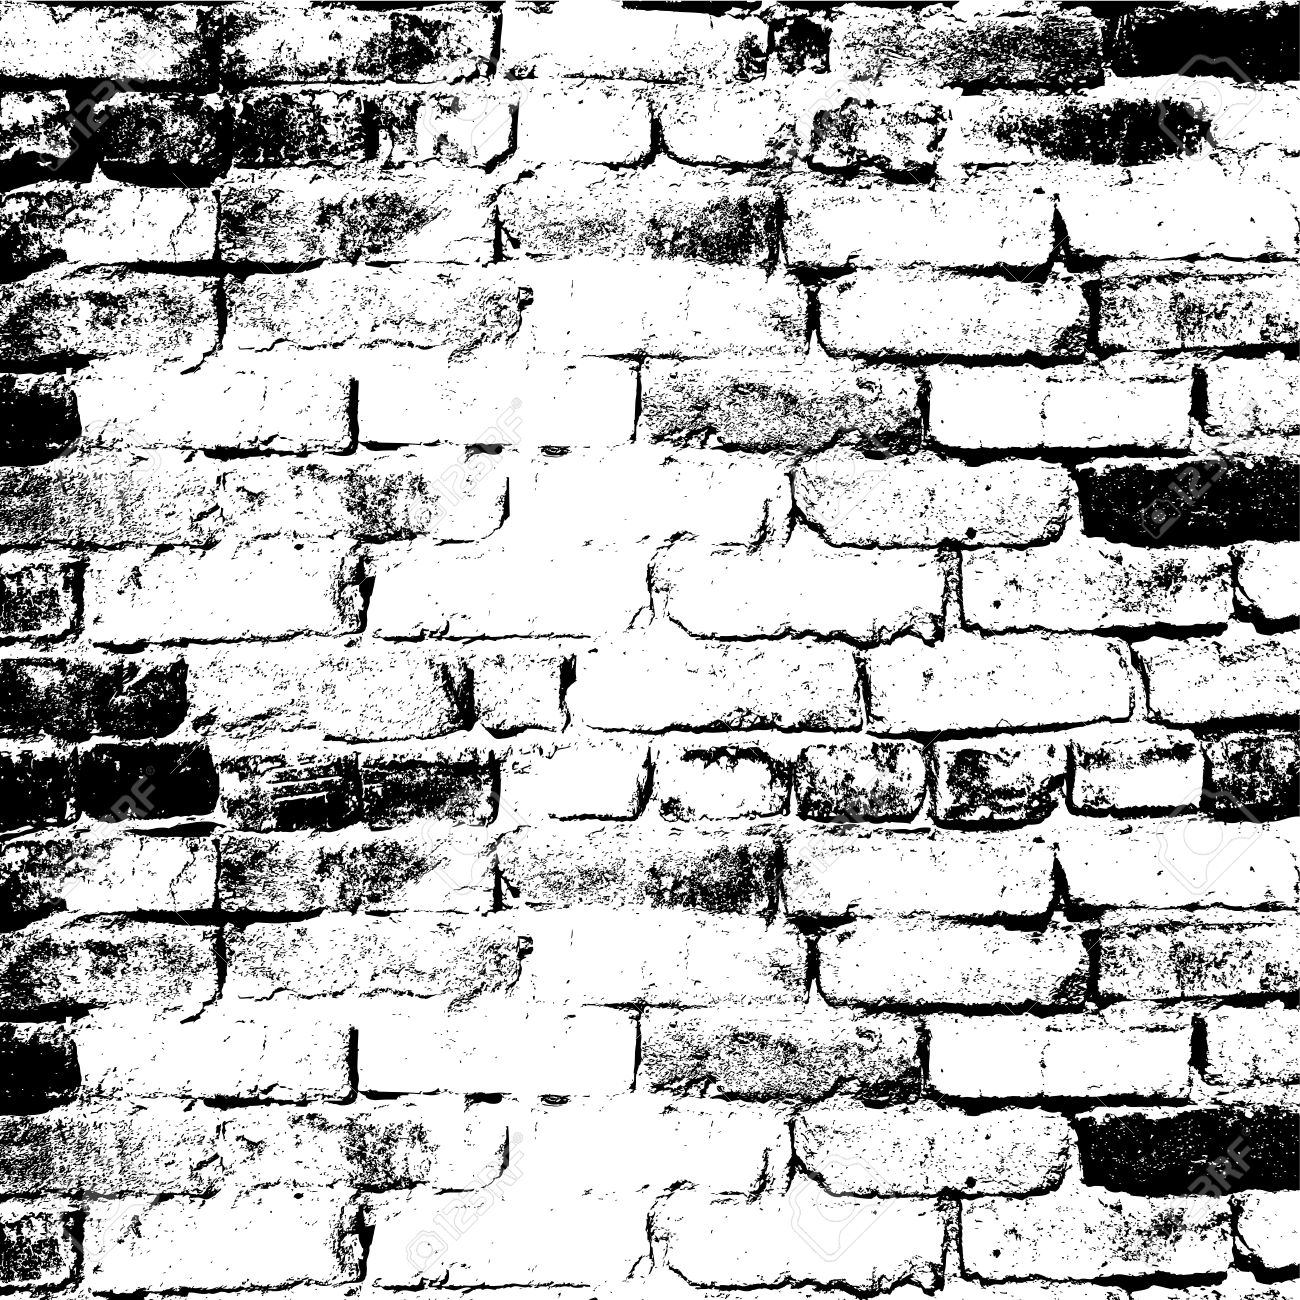 1300x1300 Brick Wall Of The House, With Lines Of A Laying Of A Solution